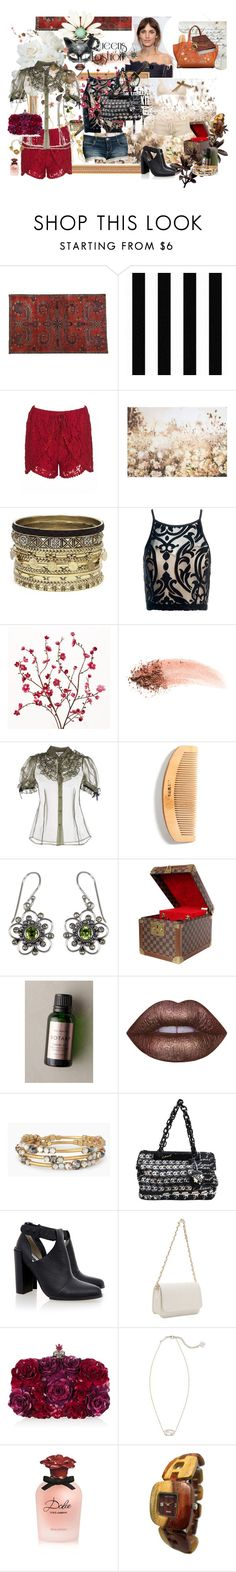 """""""Cat Lady: Queens of Fashion"""" by lisastarflower ❤ liked on Polyvore featuring Masquerade, Graham & Brown, Daytrip, S.W.O.R.D., Sans Souci, Cost Plus World Market, NARS Cosmetics, RED Valentino, NOVICA and Louis Vuitton"""